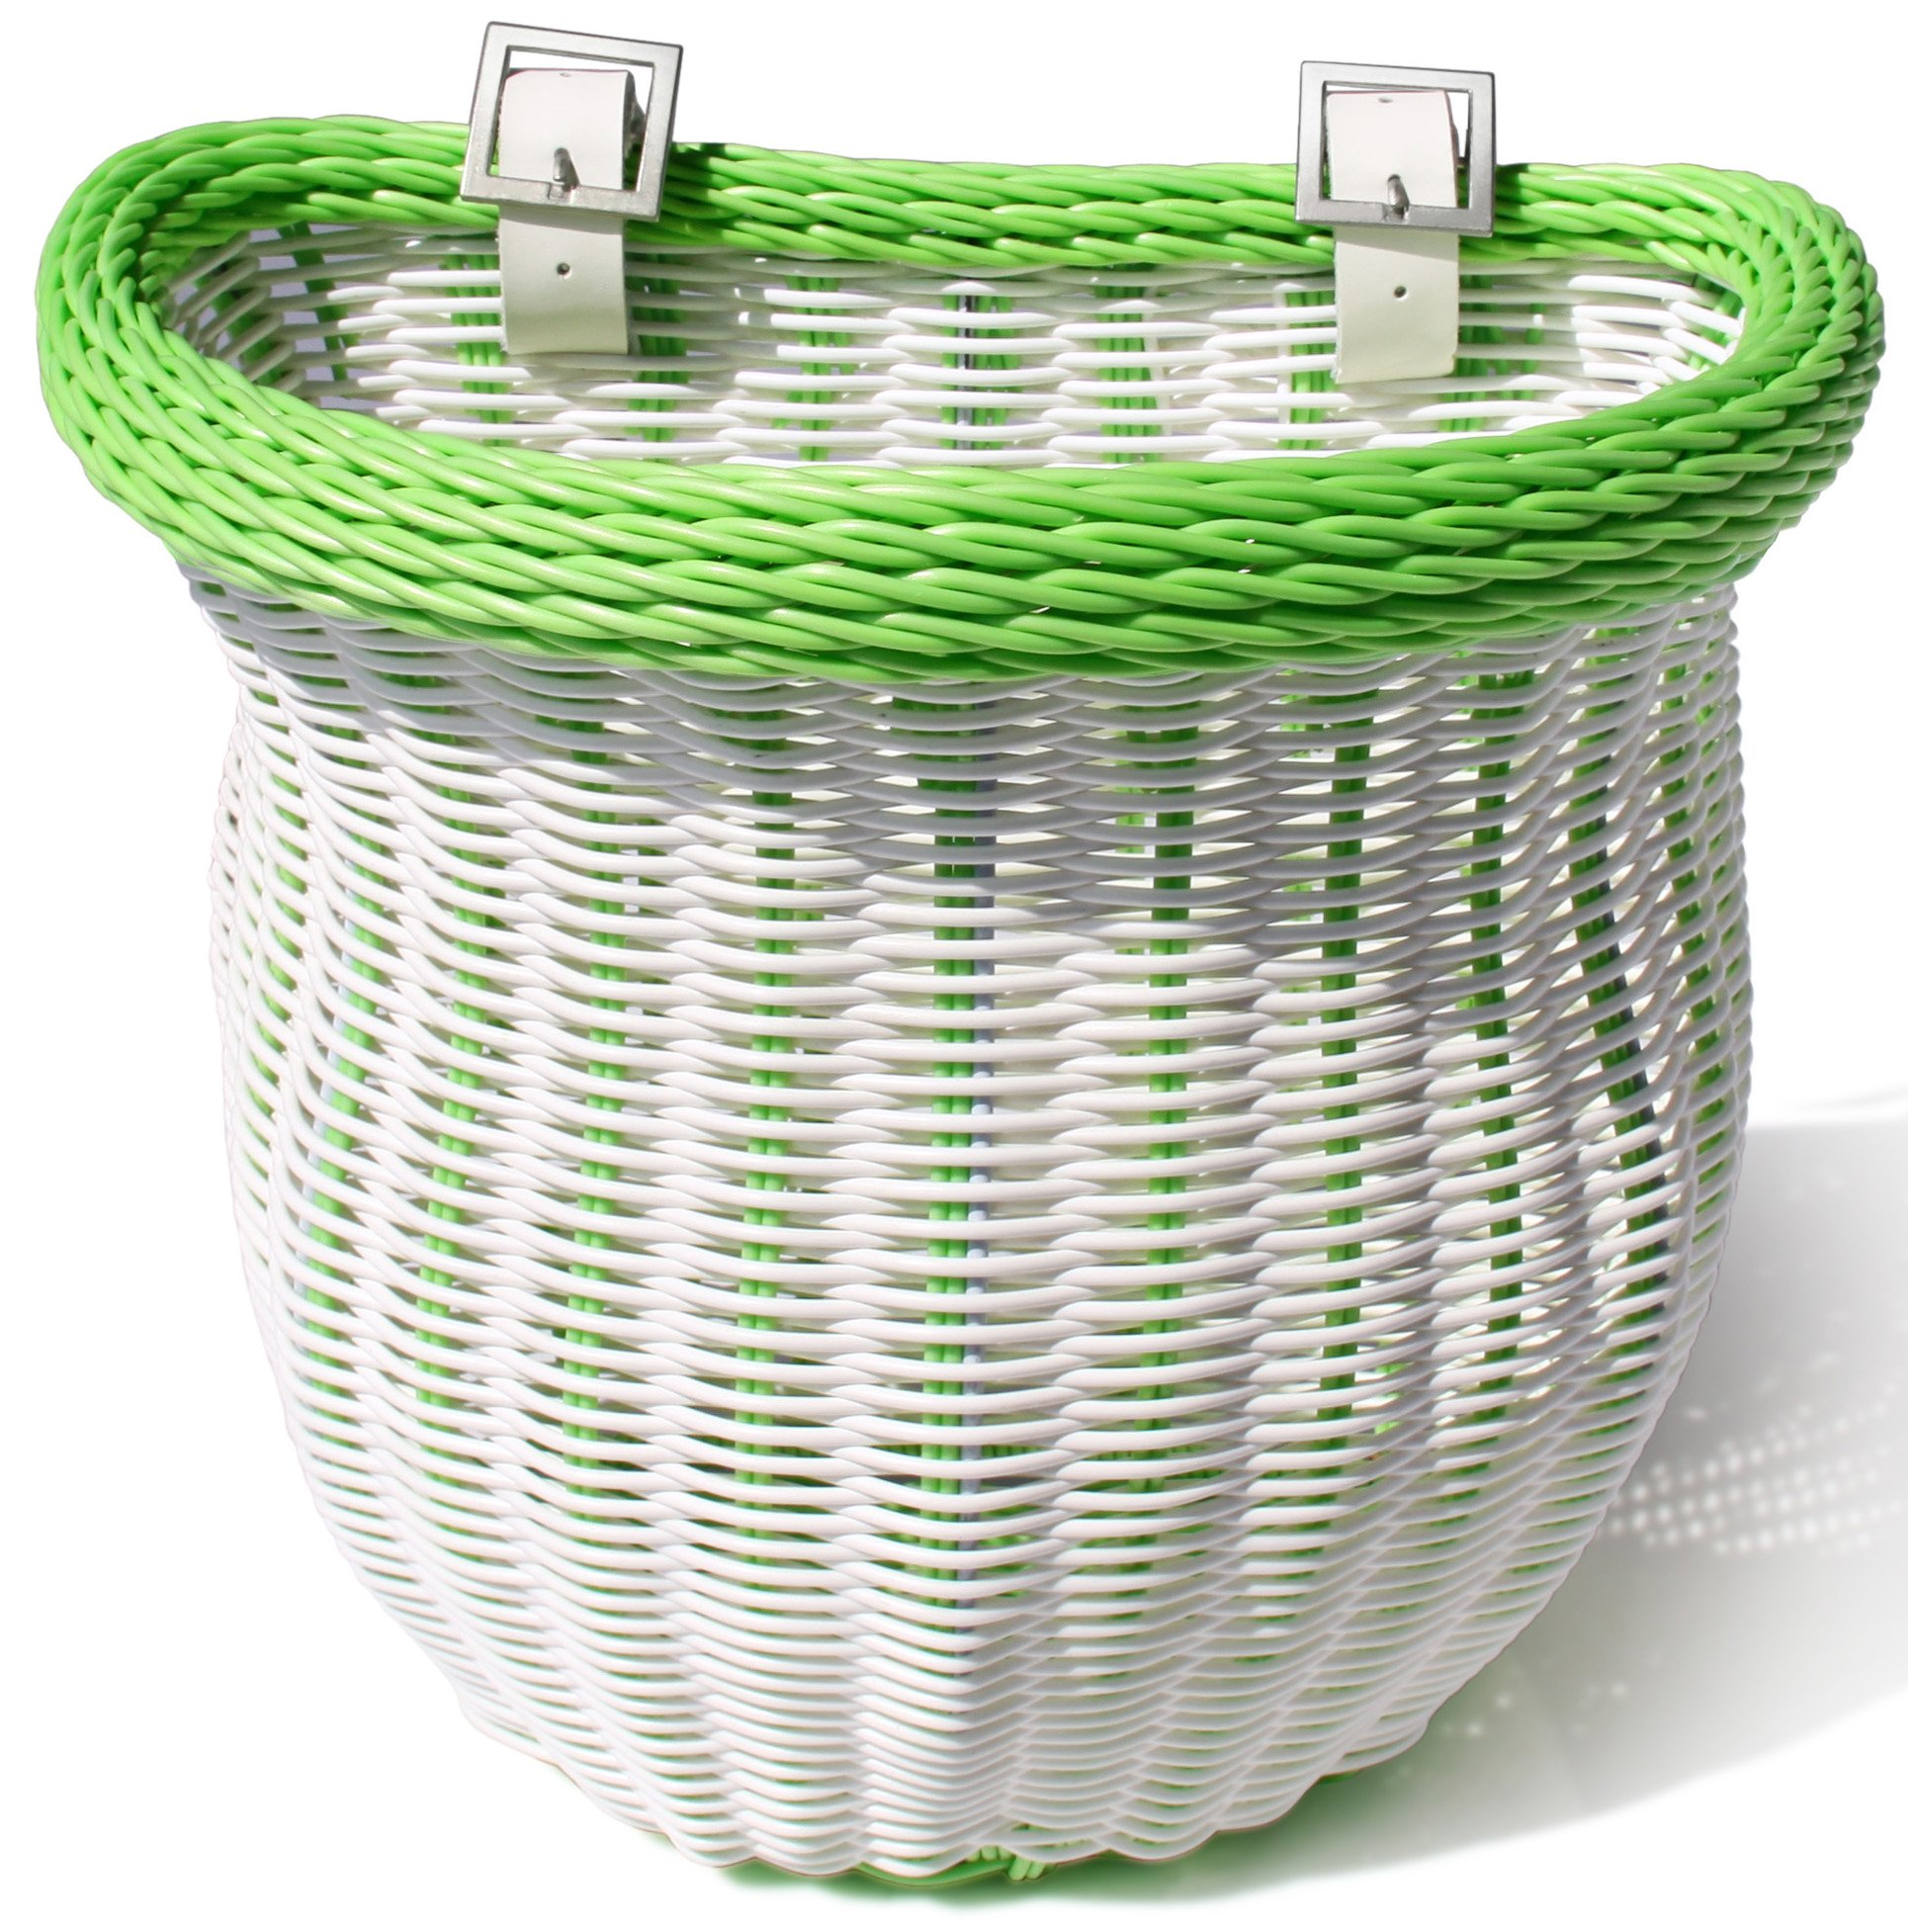 Colorbasket 01372 Front Handle Bar Adult Bike Basket, Water Resistant, Leather Straps, White with Green Trim